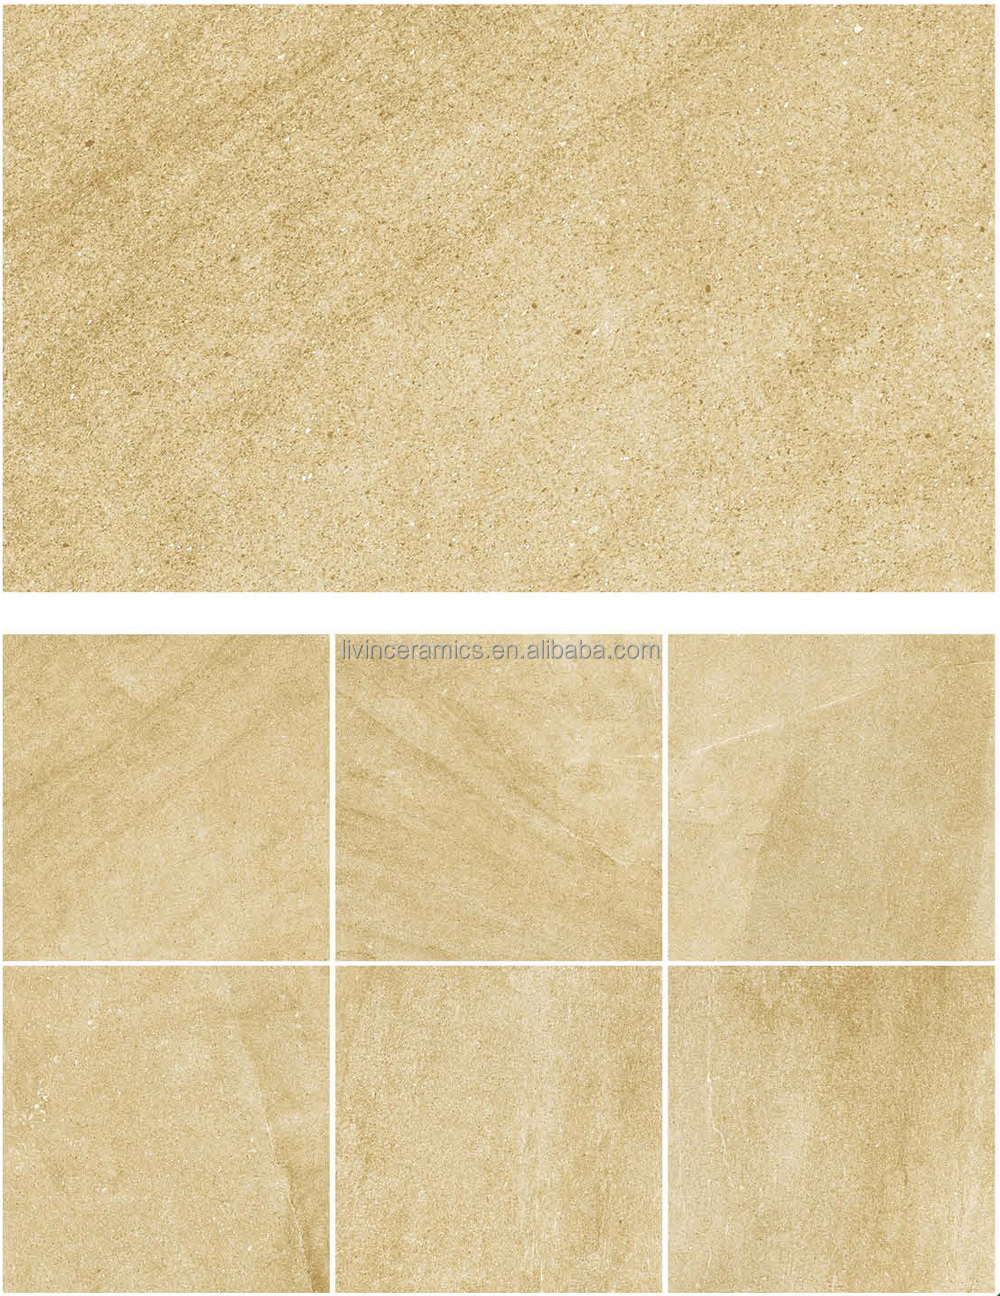 Italian floor tiles ceramic tile matte finish porcelain floor tile rustic porcelain tiles doublecrazyfo Choice Image